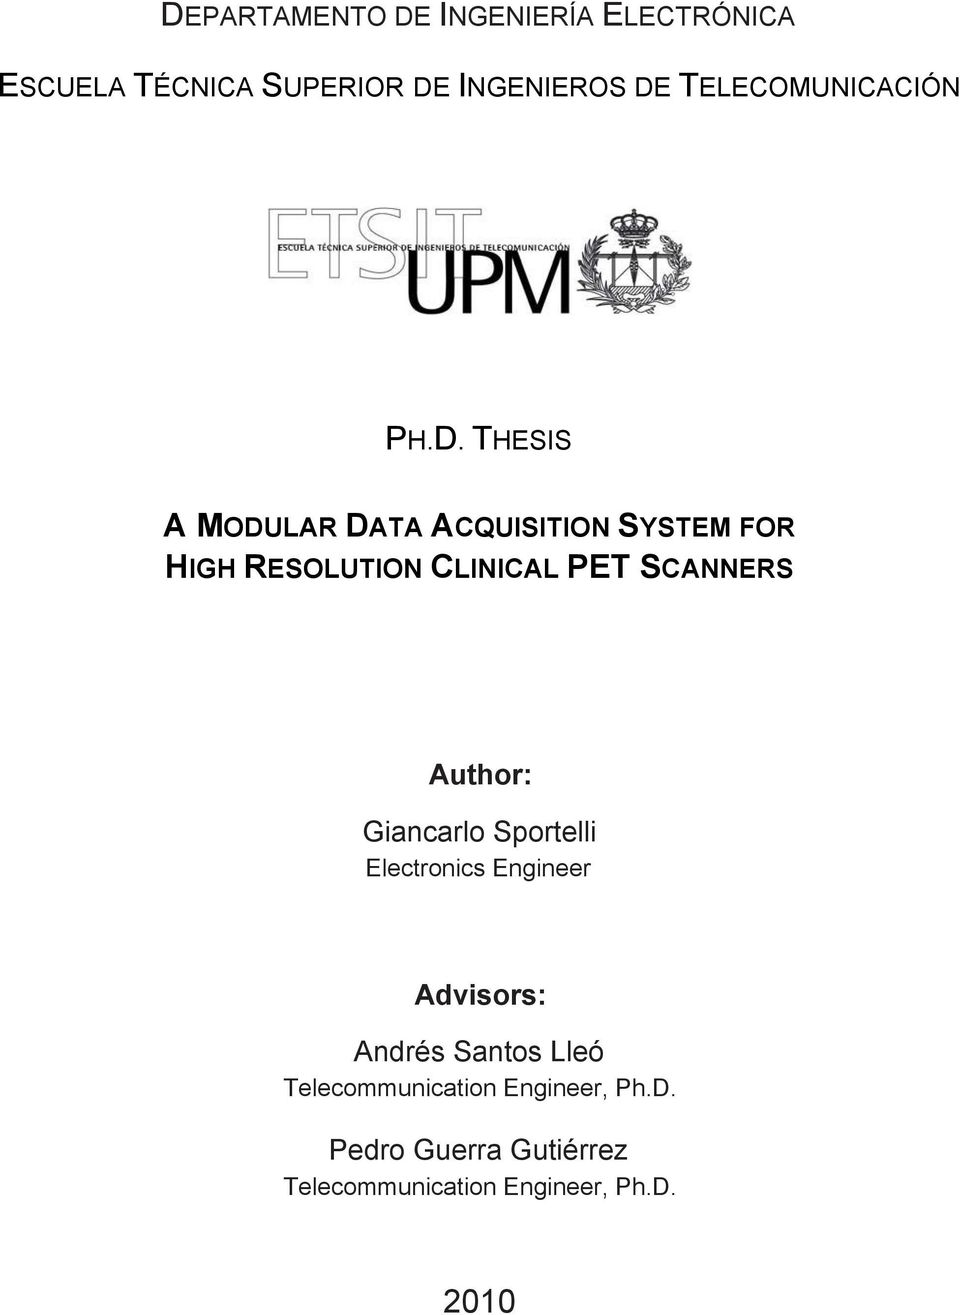 THESIS A MODULAR DATA ACQUISITION SYSTEM FOR HIGH RESOLUTION CLINICAL PET SCANNERS